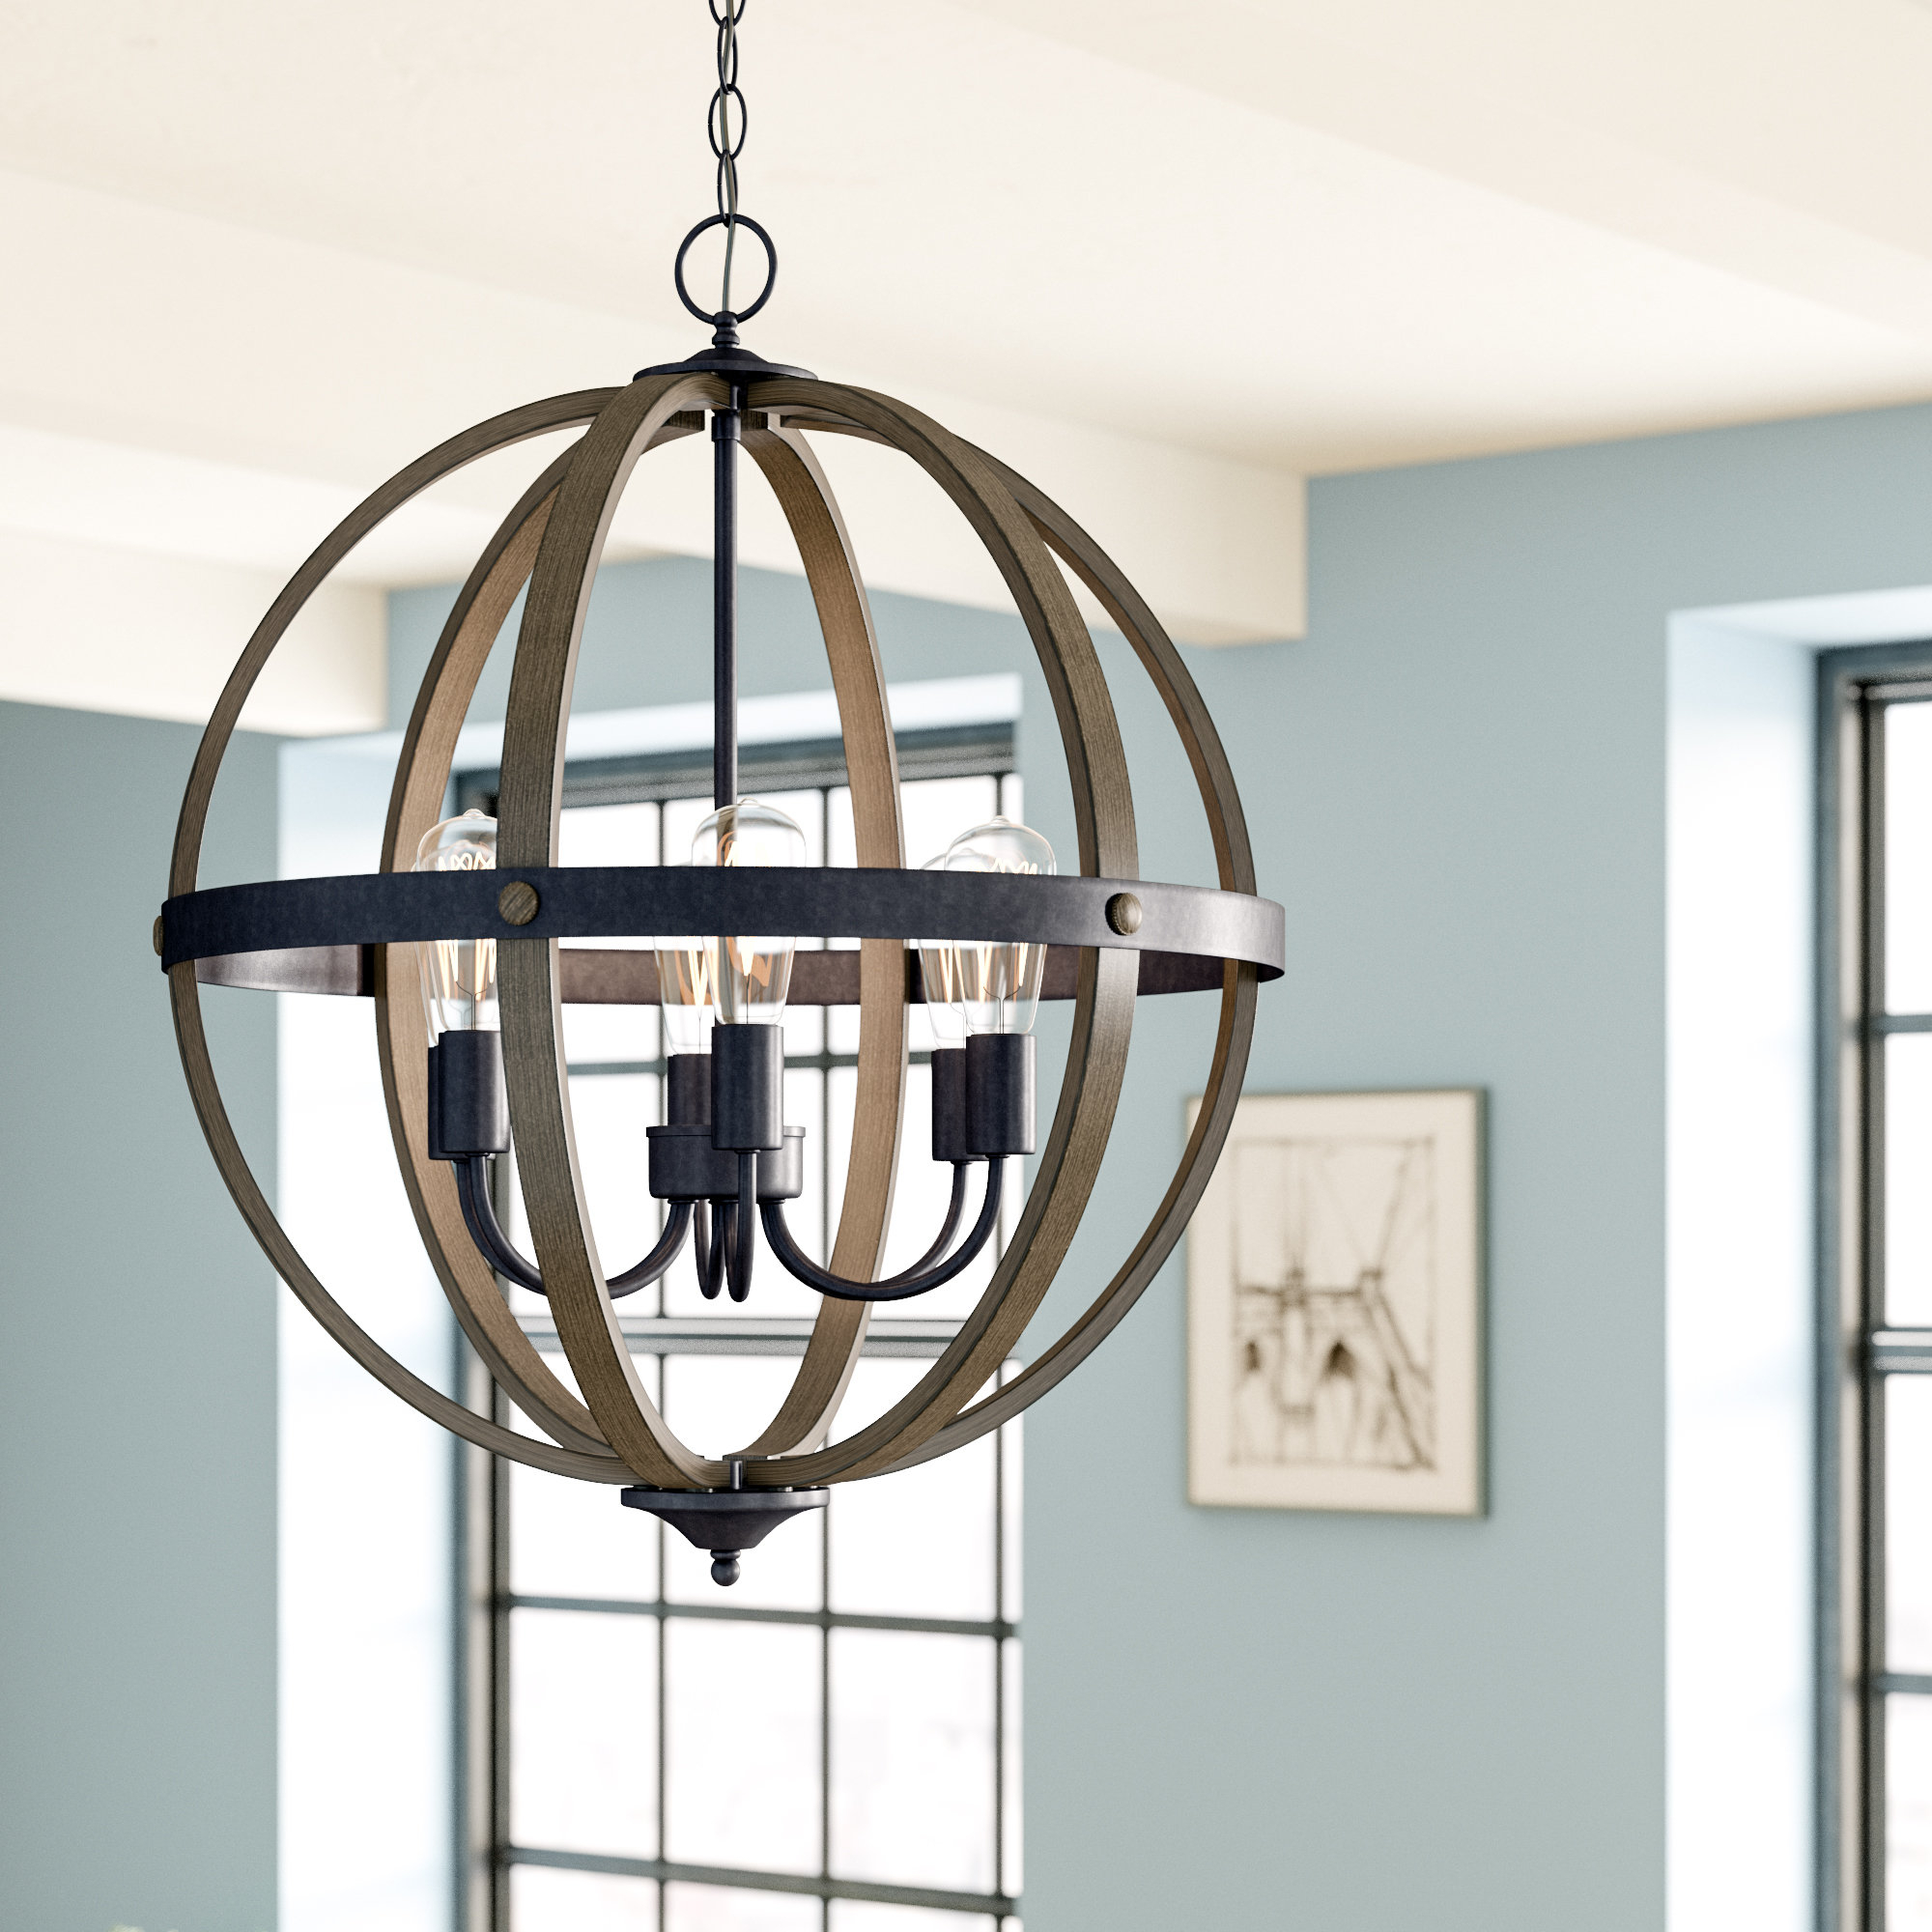 Kathrina 6 Light Globe Chandelier Pertaining To Fashionable Alden 6 Light Globe Chandeliers (Gallery 11 of 25)